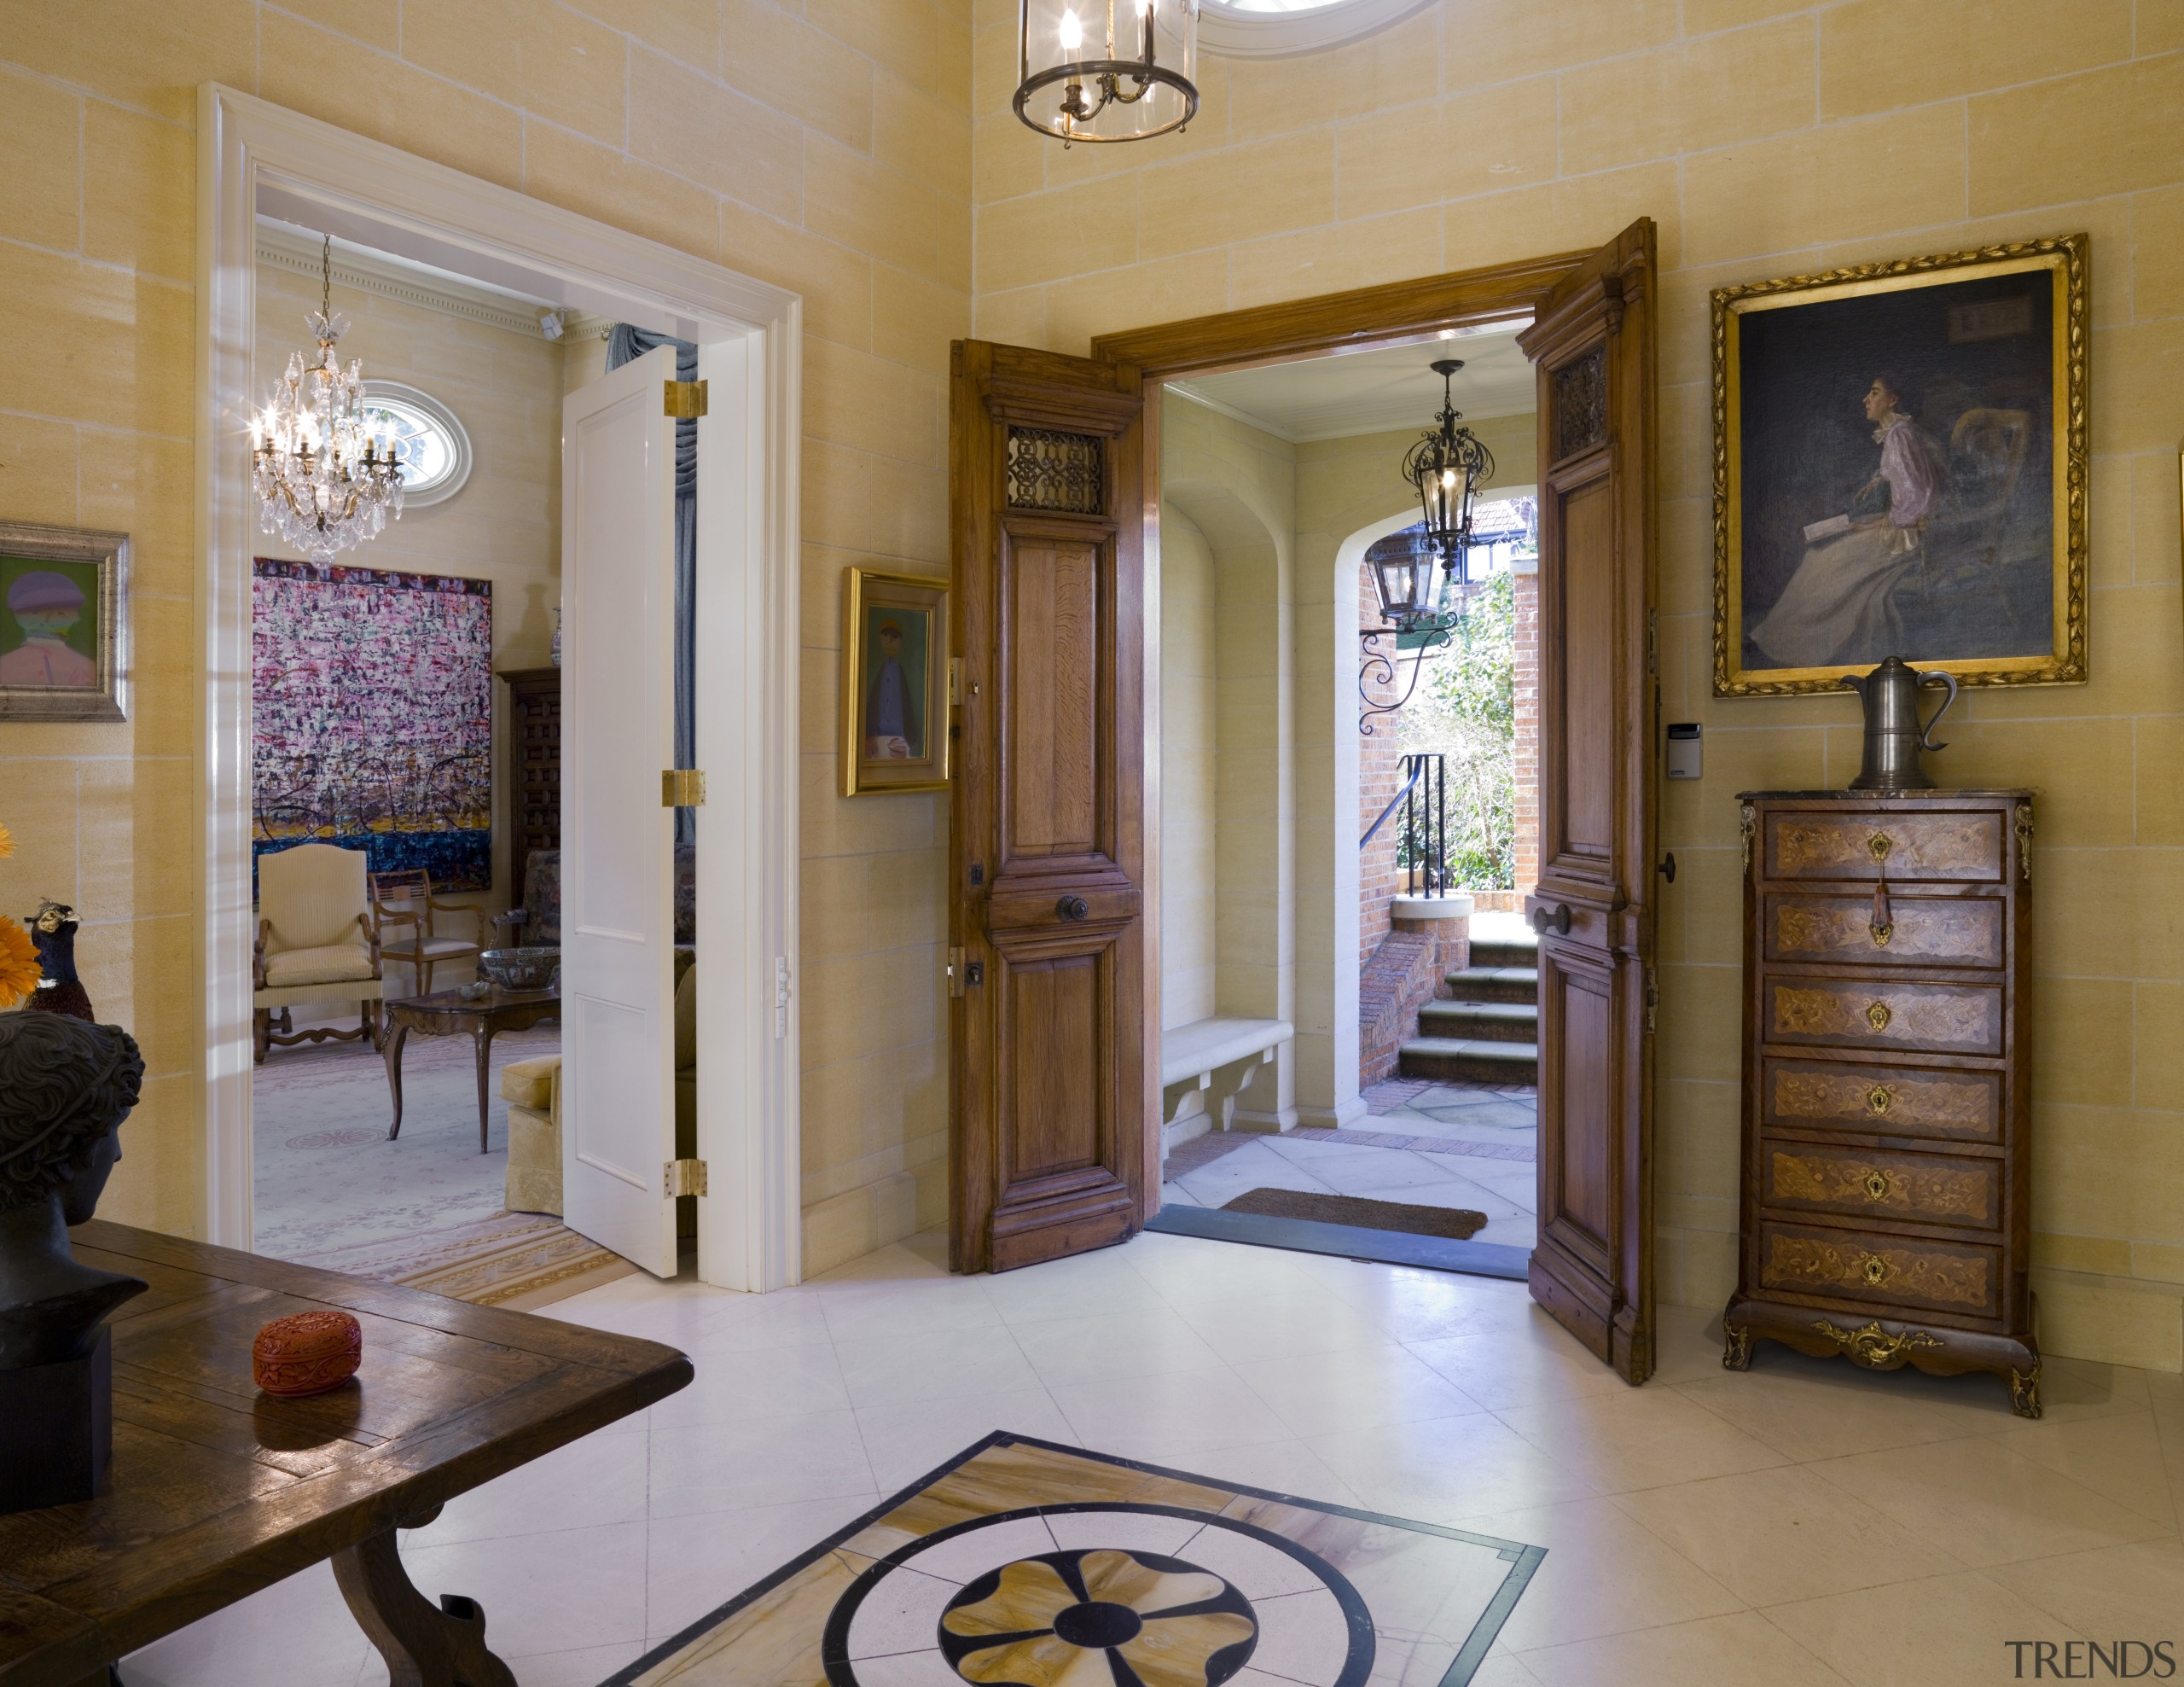 Other traditional French elements include the limestone floors ceiling, door, estate, floor, flooring, home, interior design, lobby, property, real estate, room, brown, gray